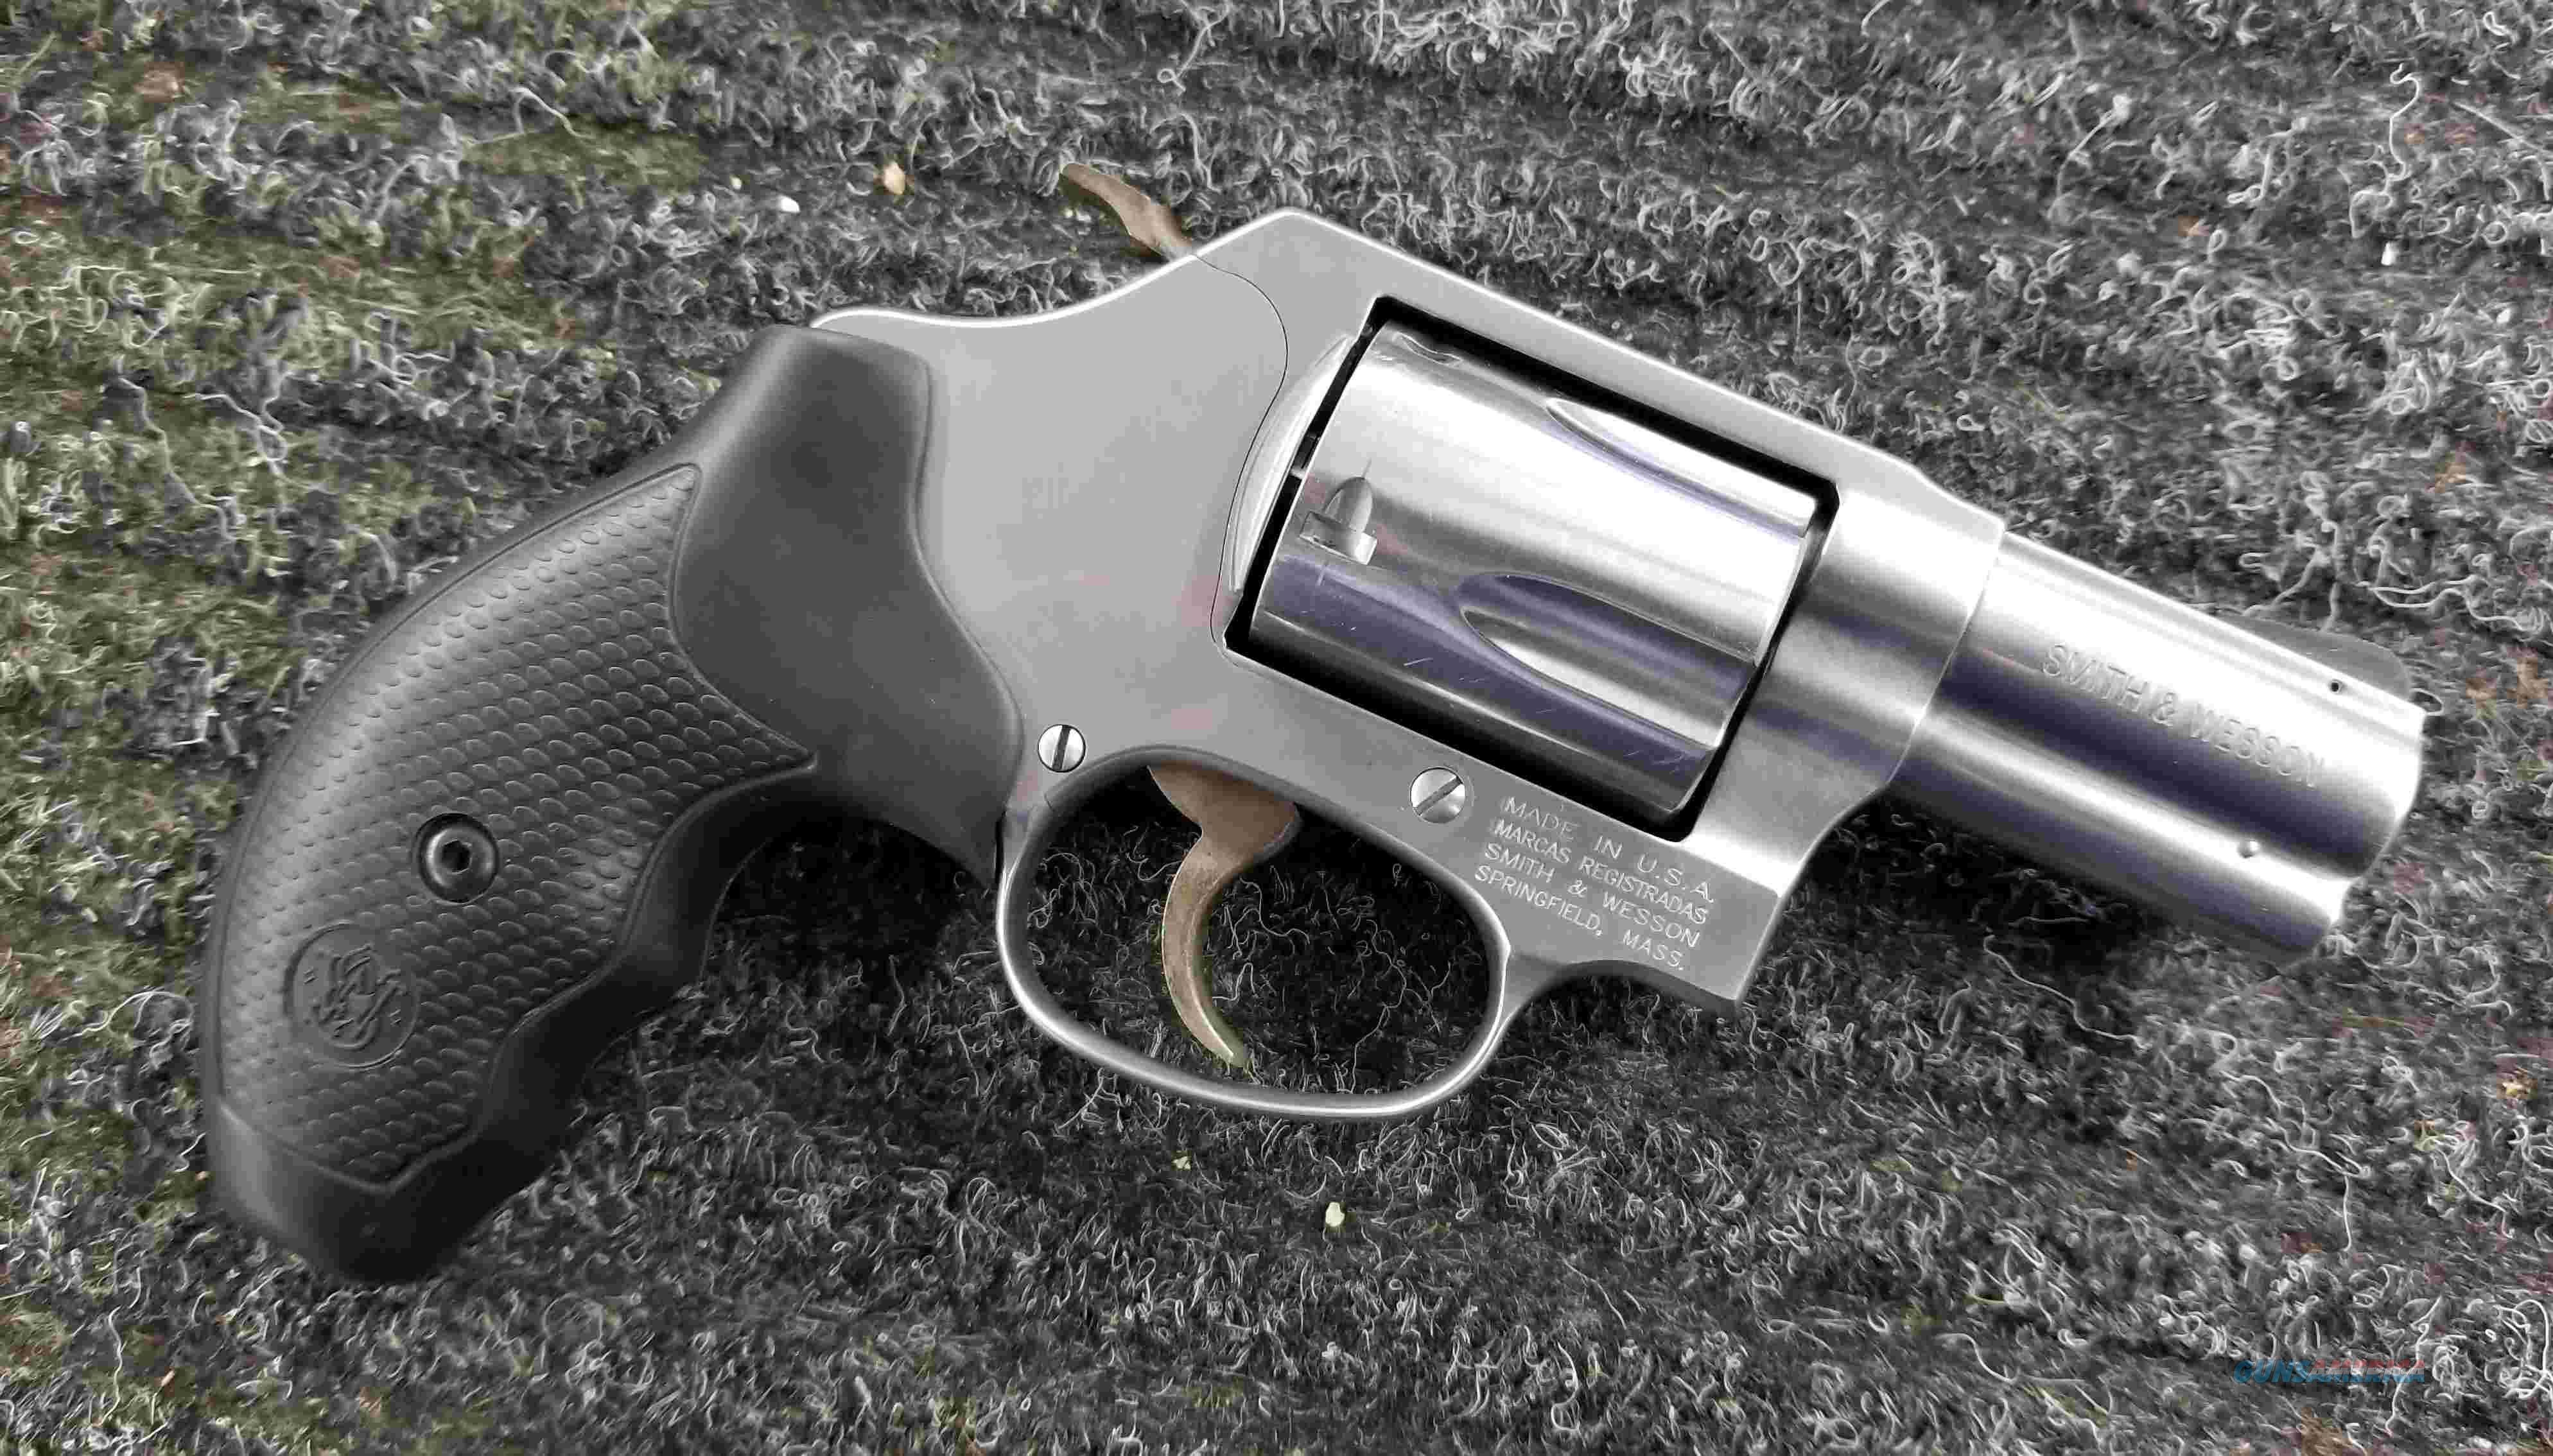 Smith & Wesson 60-14  357 Magnum Stainless Revolver - Free Shipping !!  Guns > Pistols > Smith & Wesson Revolvers > Small Frame ( J )